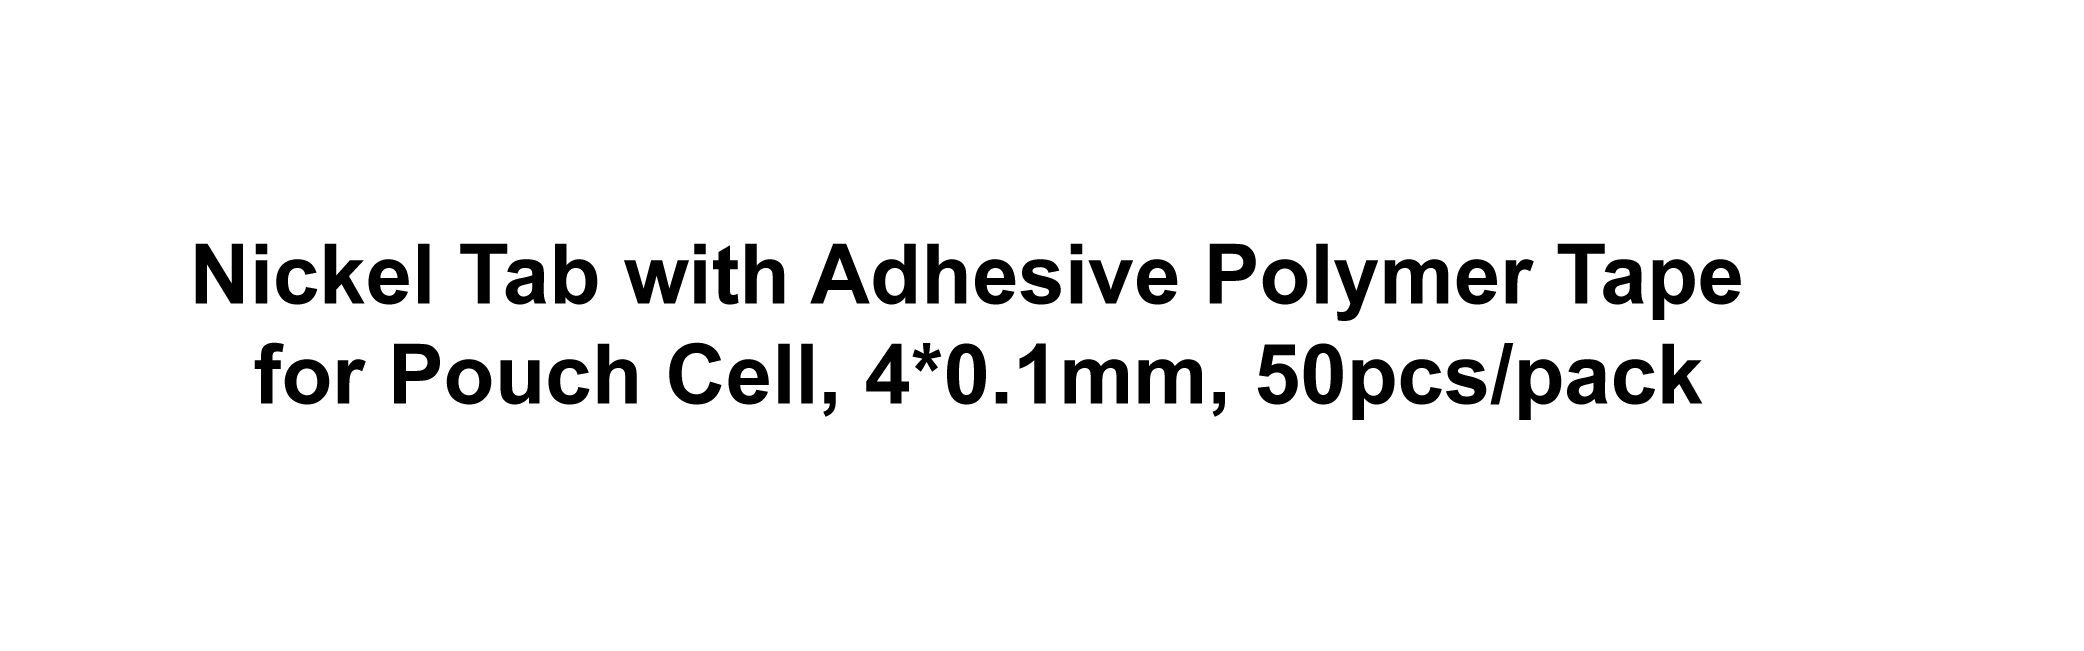 Nickel Tab with Adhesive Polymer Tape for Pouch Cell, 4*0.1mm, 50pcs/pack